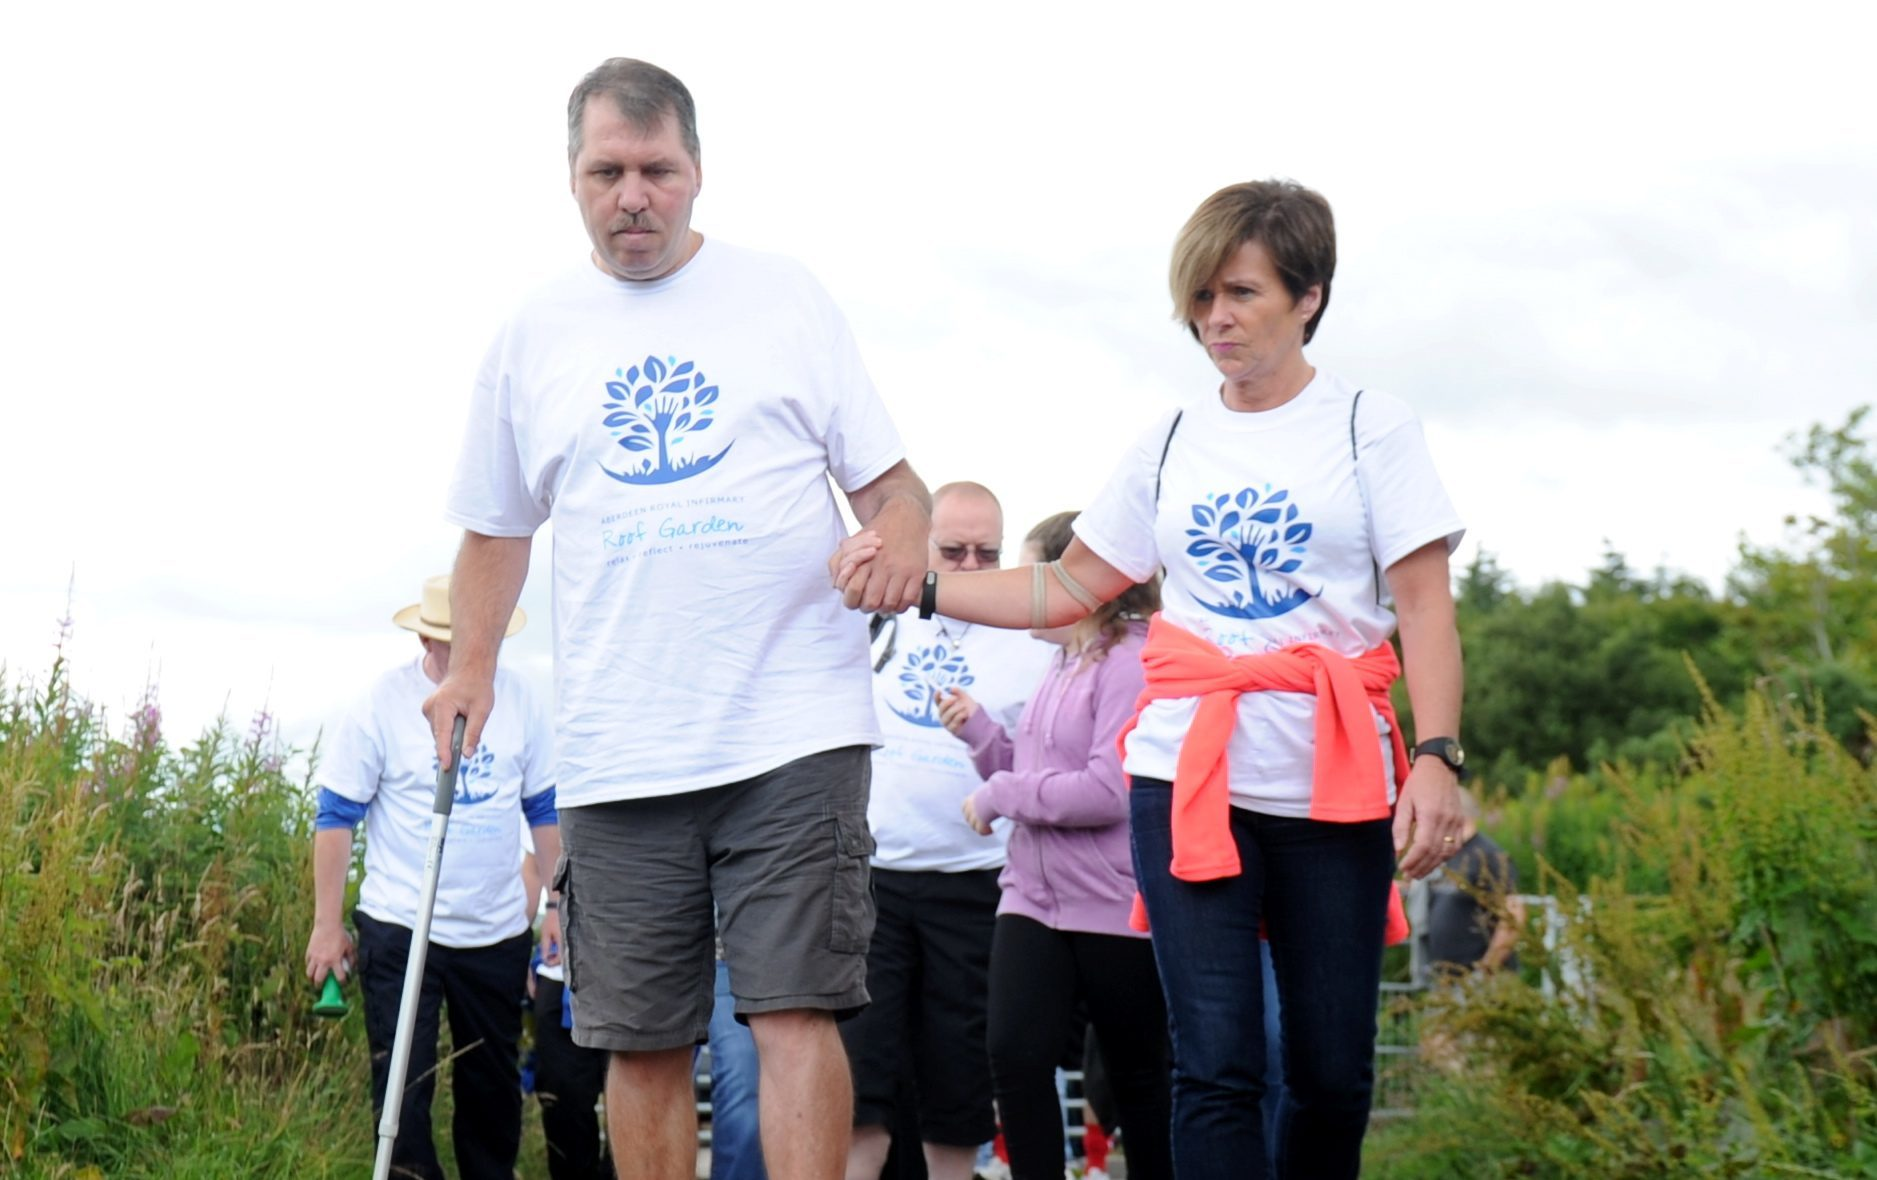 Paul Breen, who has been awarded a BEM, walking up Brimmond Hill with the help of Karen Fyvie to raise money.